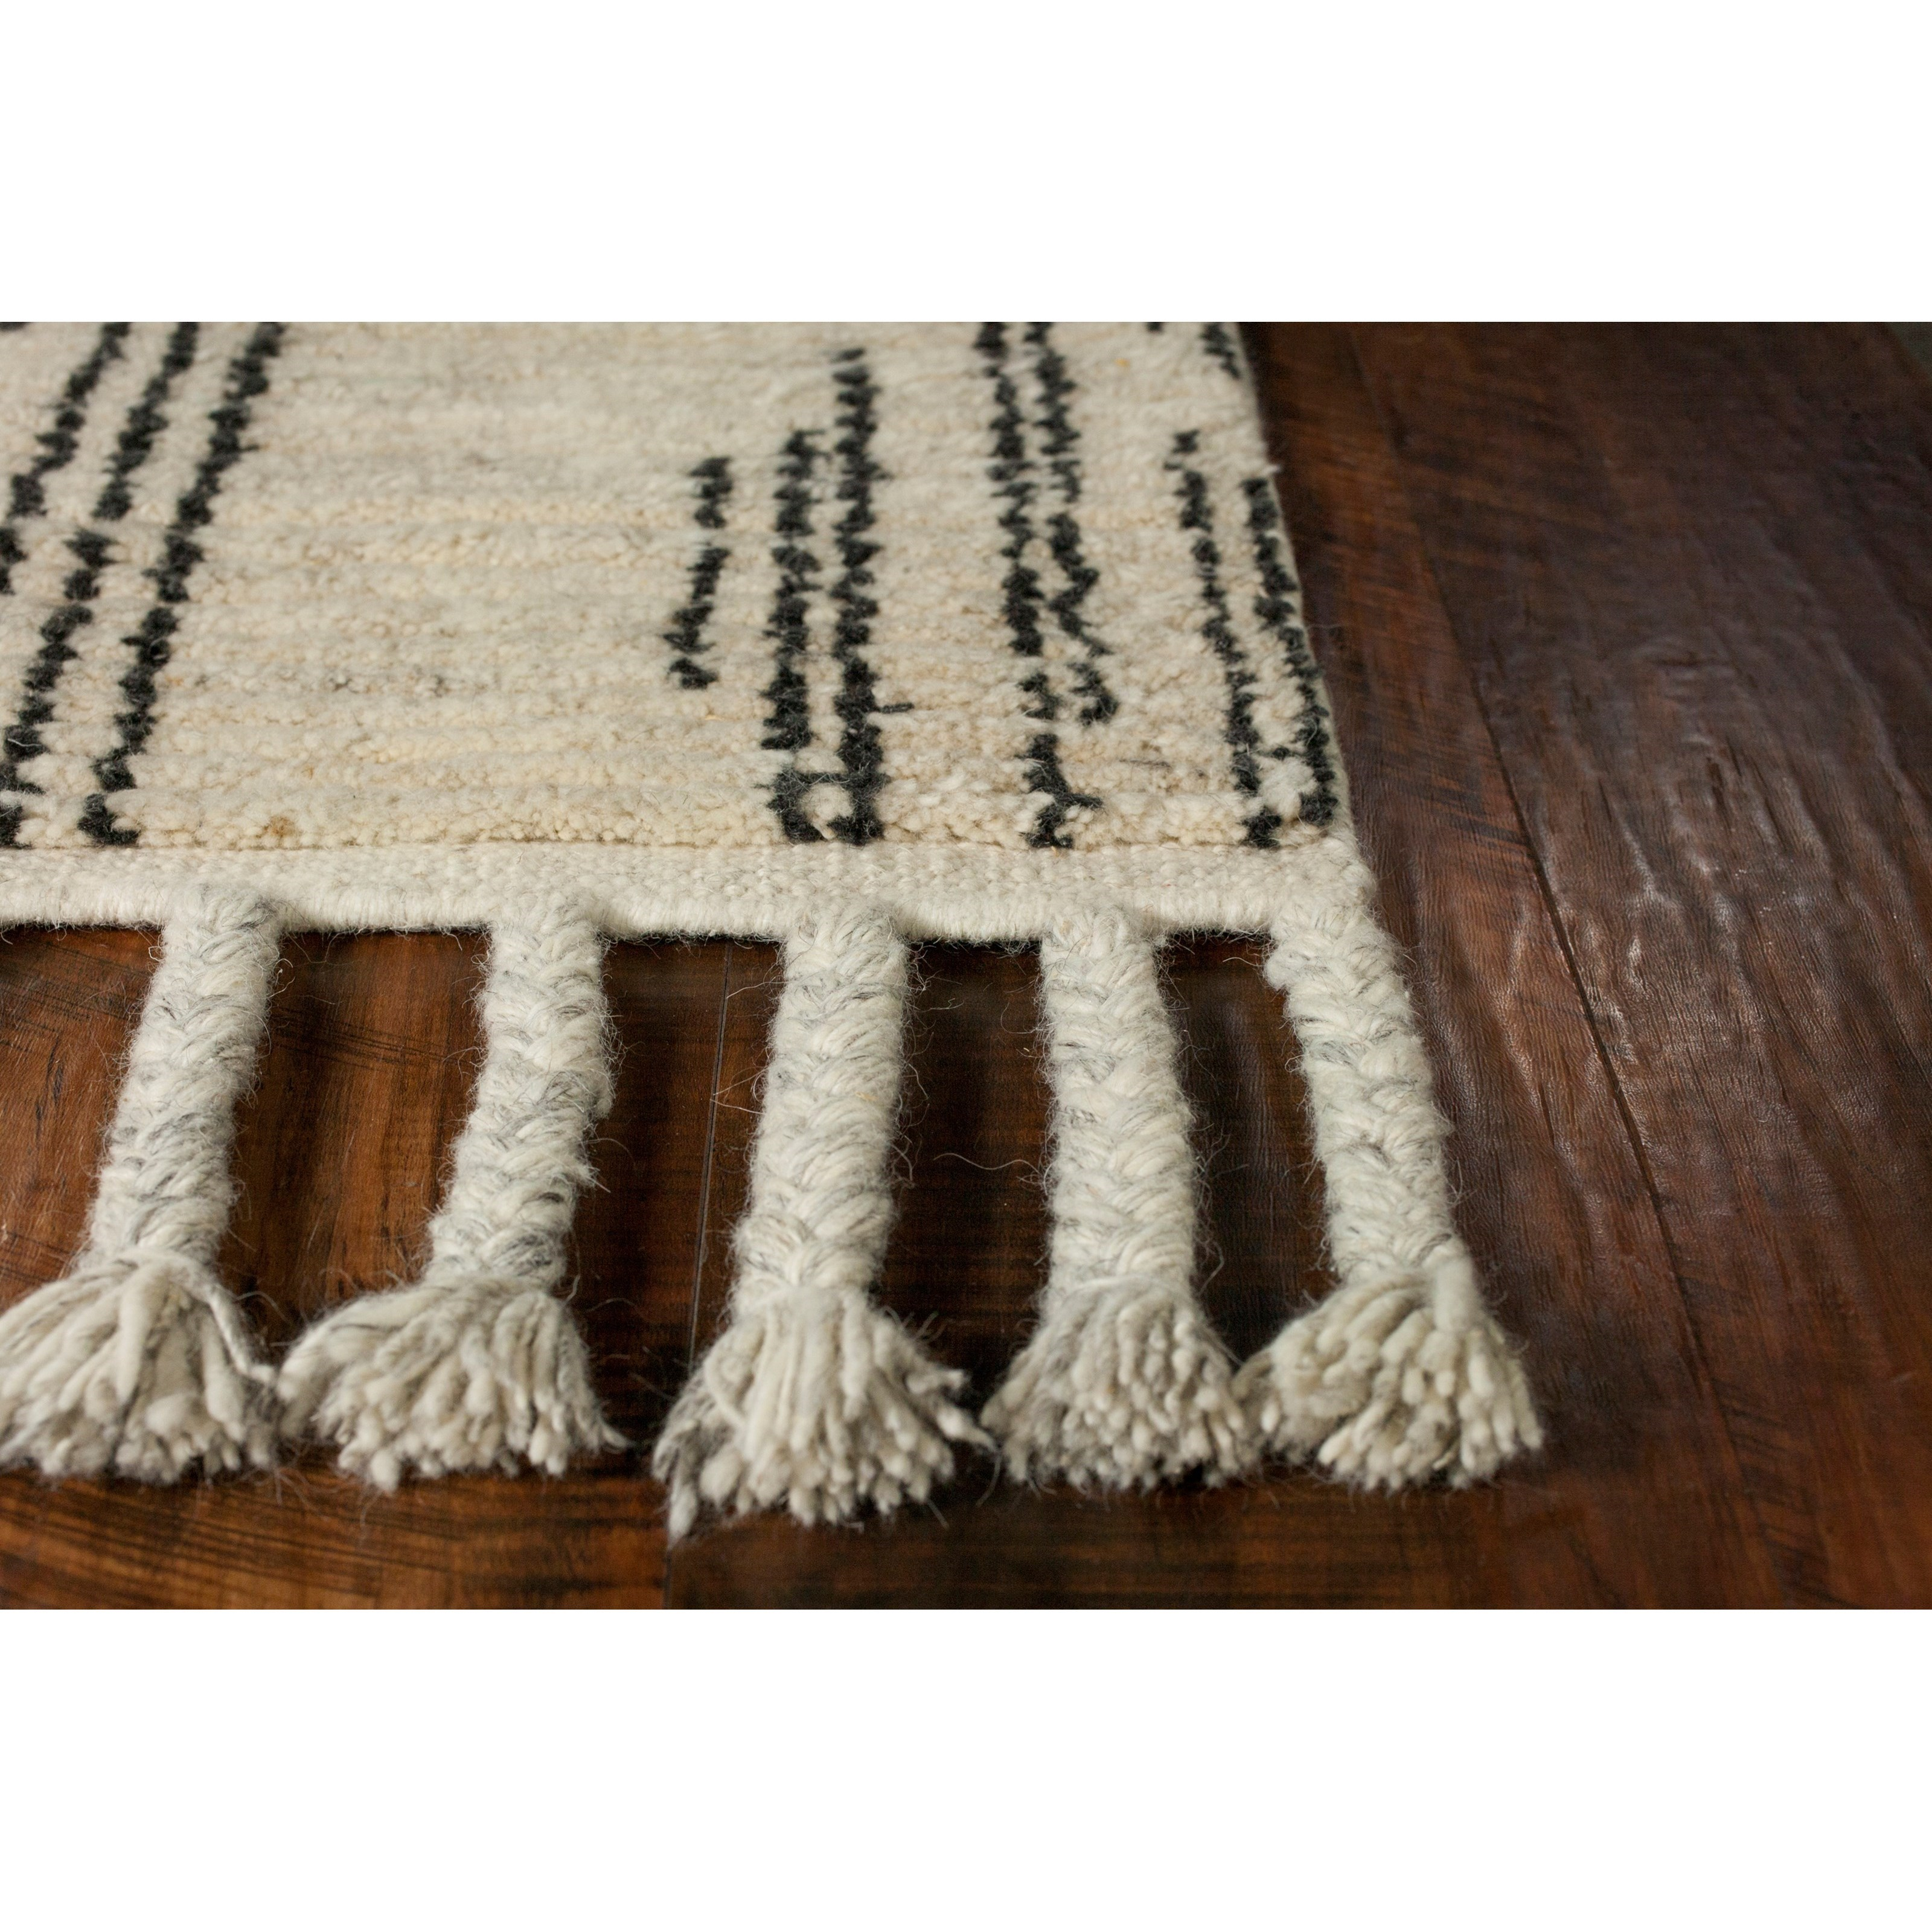 "Austin 7'9"" x 9'9"" Natural Stitches Rug by Kas at Darvin Furniture"